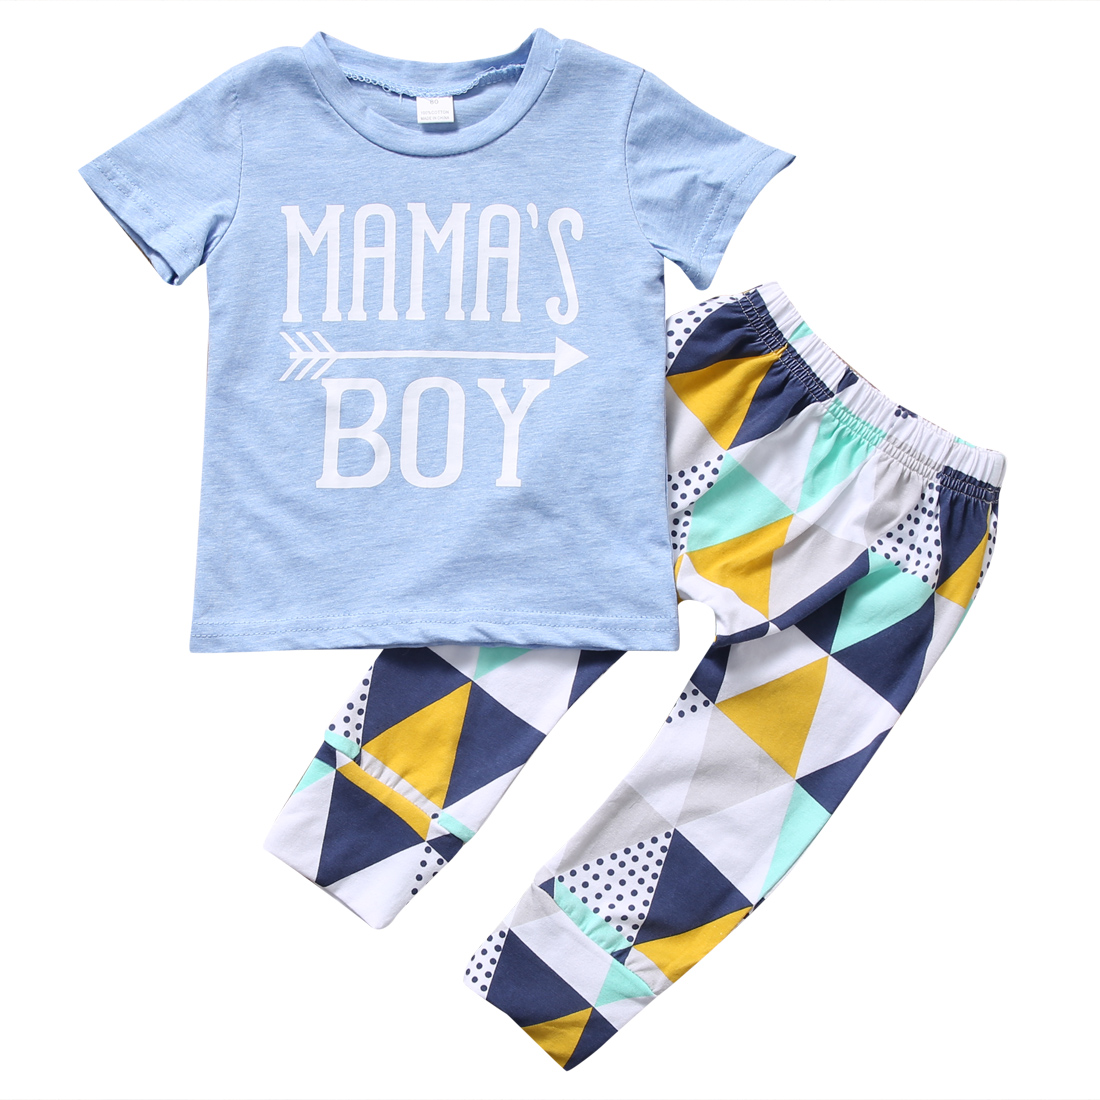 2PCS Newborn Baby Boys Outfits T-shirt Tops+ Pants Sets Clothes Summer Short Sleeve Mama Boy Print Tees Casual Clothes organic airplane newborn baby boy girl clothes set tops t shirt pants long sleeve cotton blue 2pcs outfits baby boys set